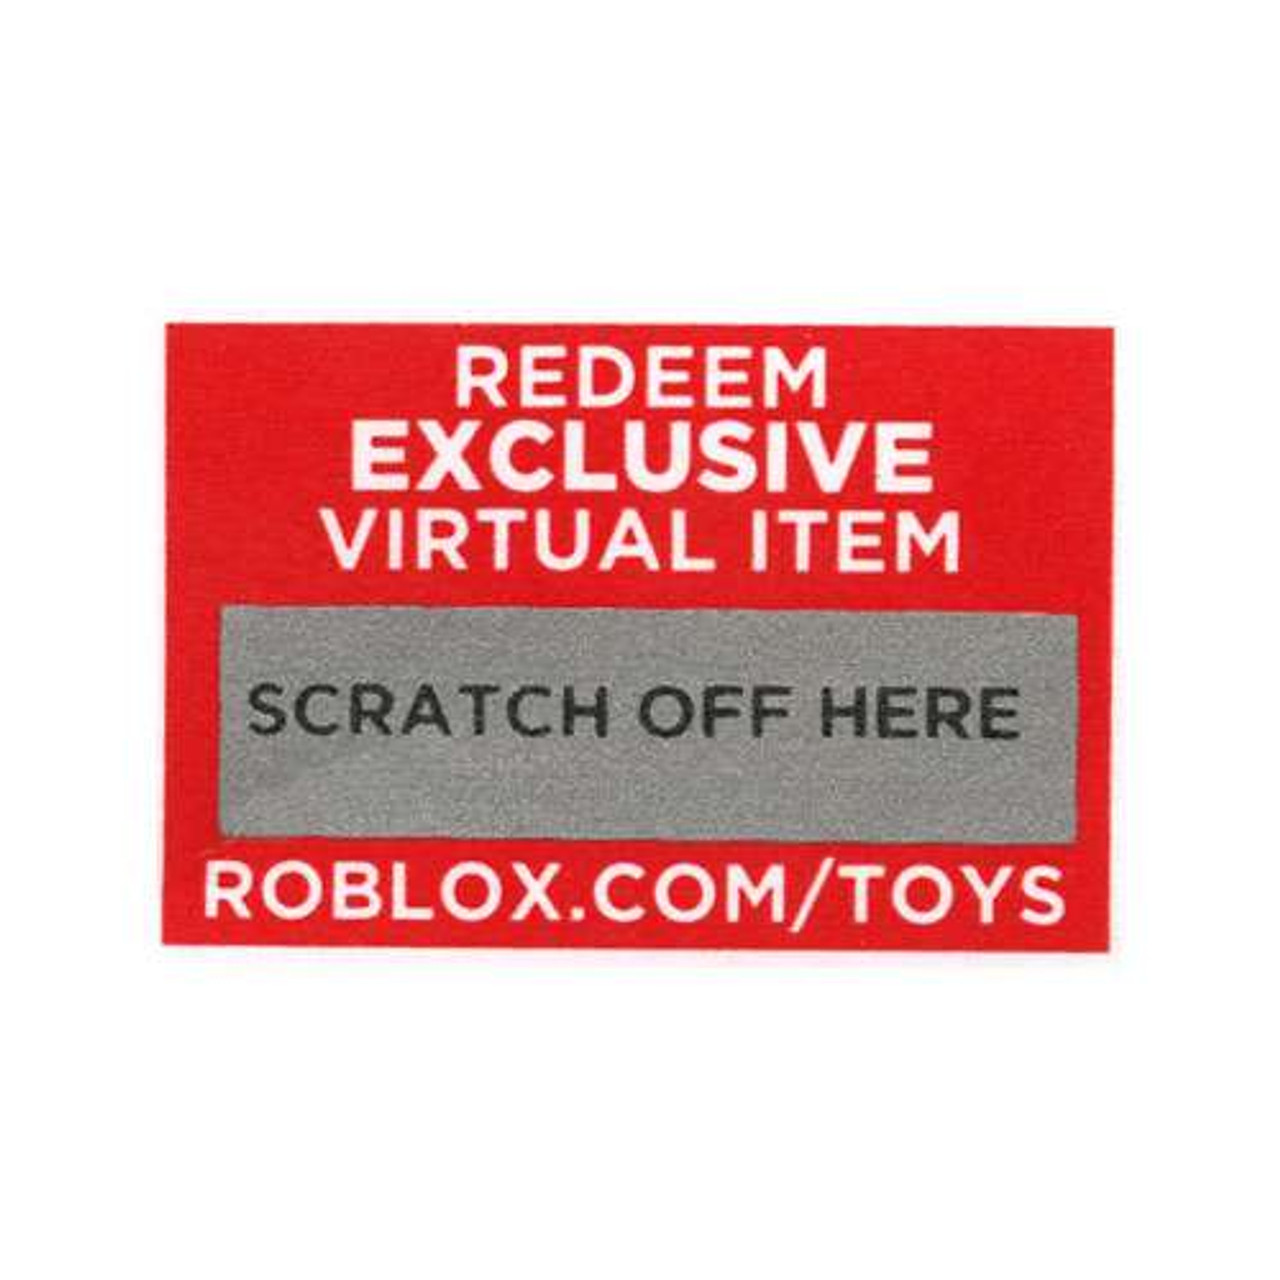 Roblox Promo Codes Stranger Things 3 Roblox Redeem 1 Musical Virtual Item 3 Online Code Jazwares Toywiz